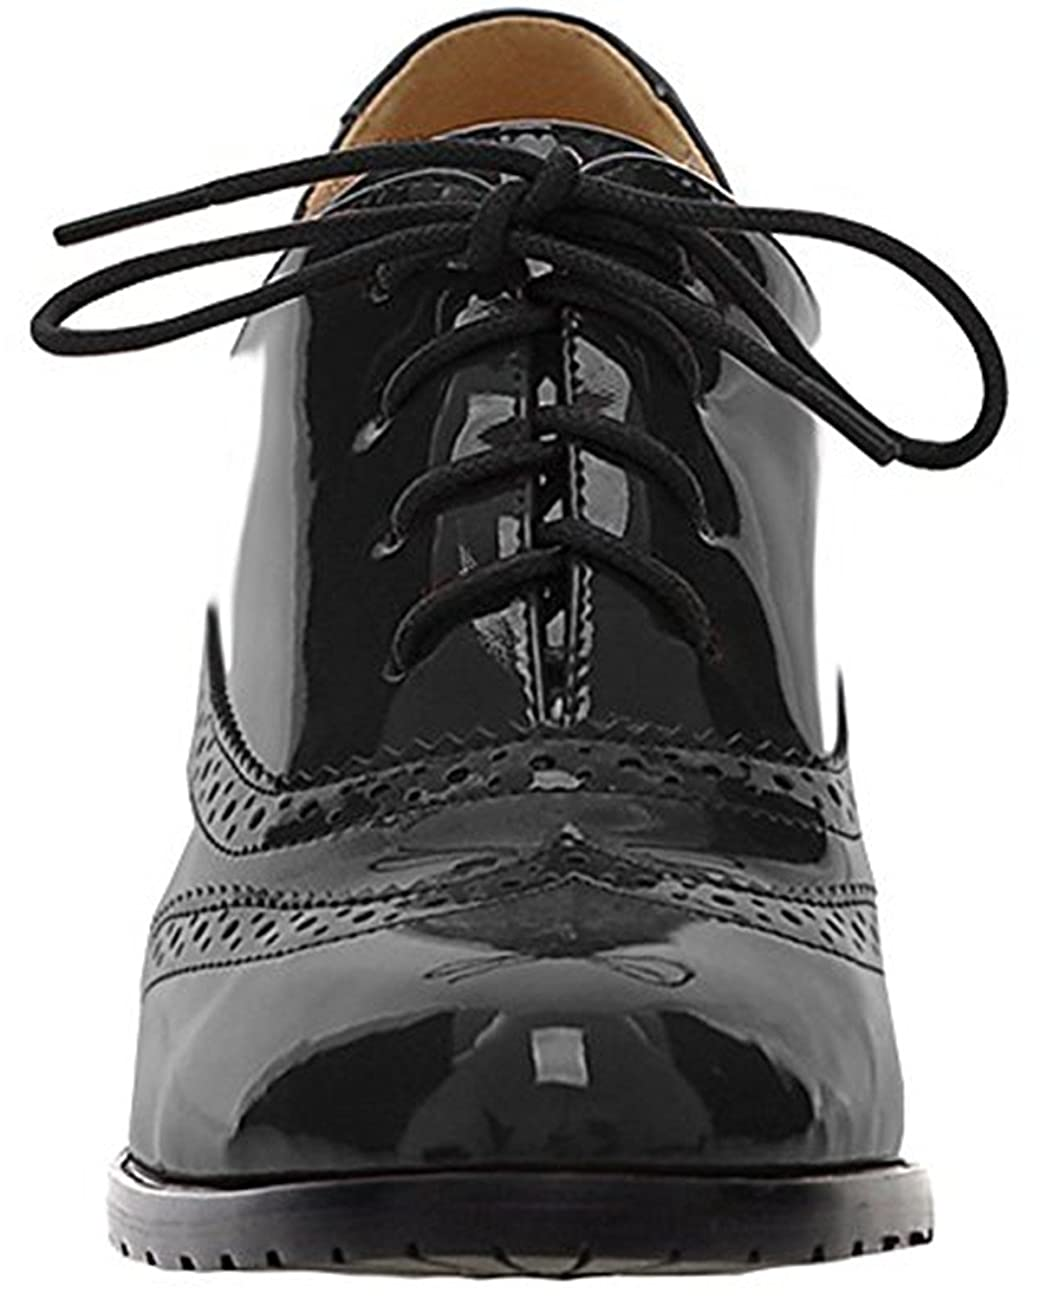 Women's Oxford Dress Pumps WGWJM-Patent Leather-Mid-heel-Hallowmas Shoes 2